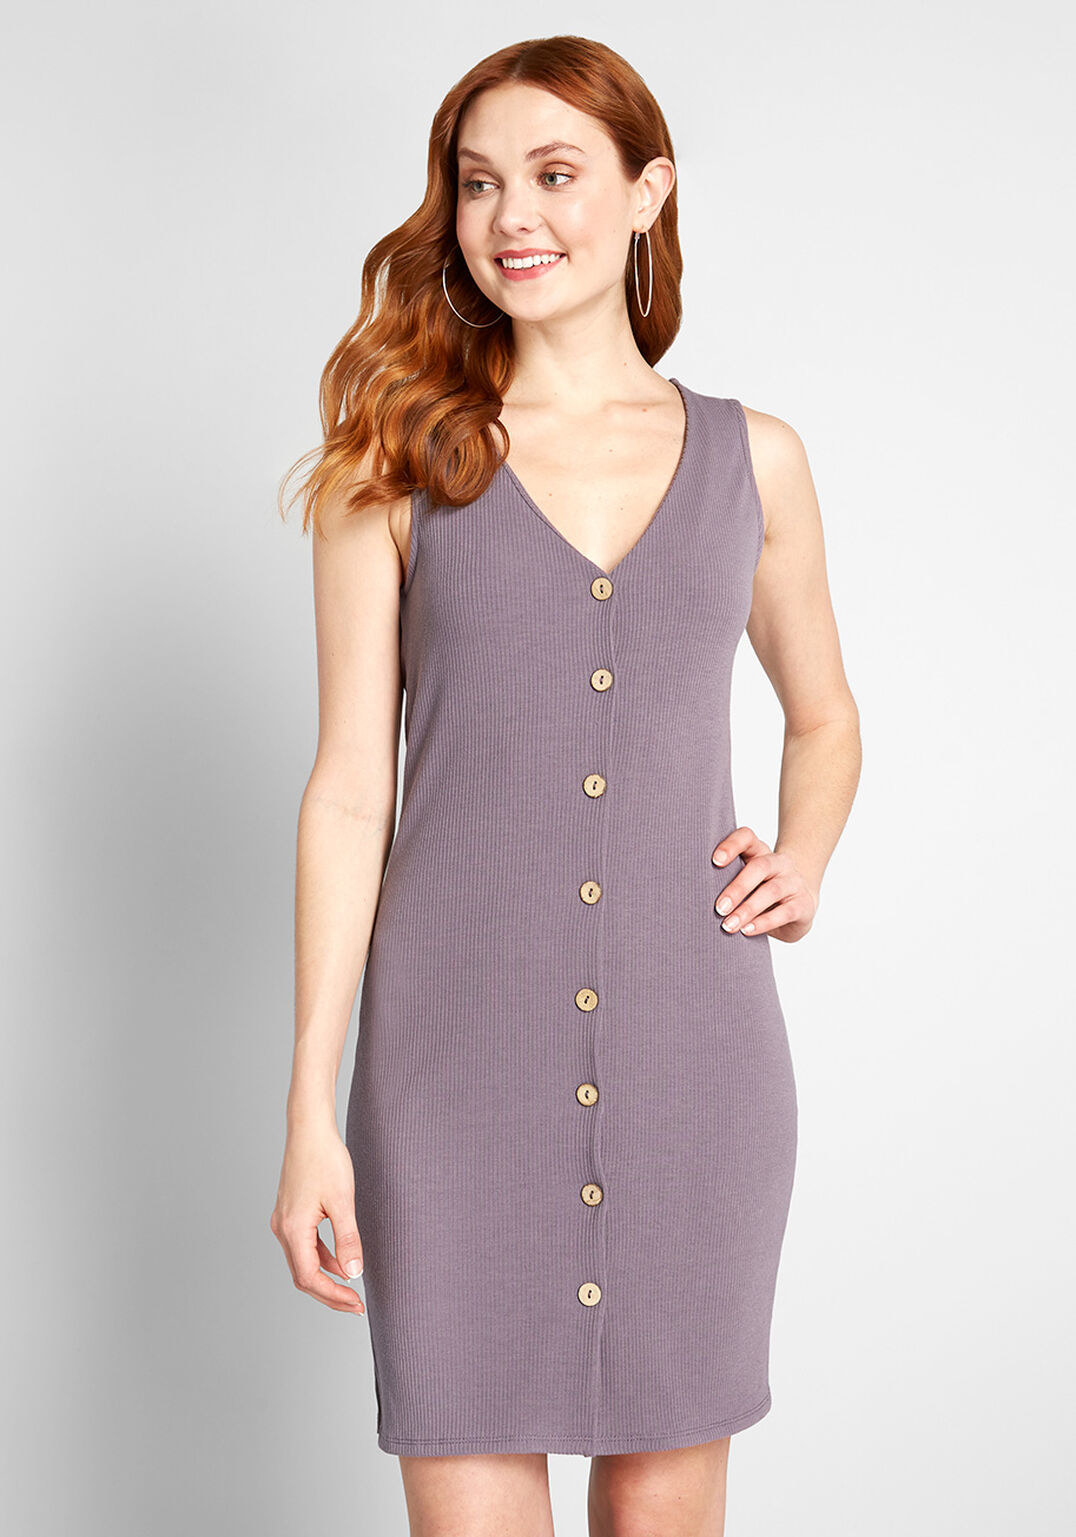 a model in a body hugging lilac ribbed dress that ends slightly above the knee